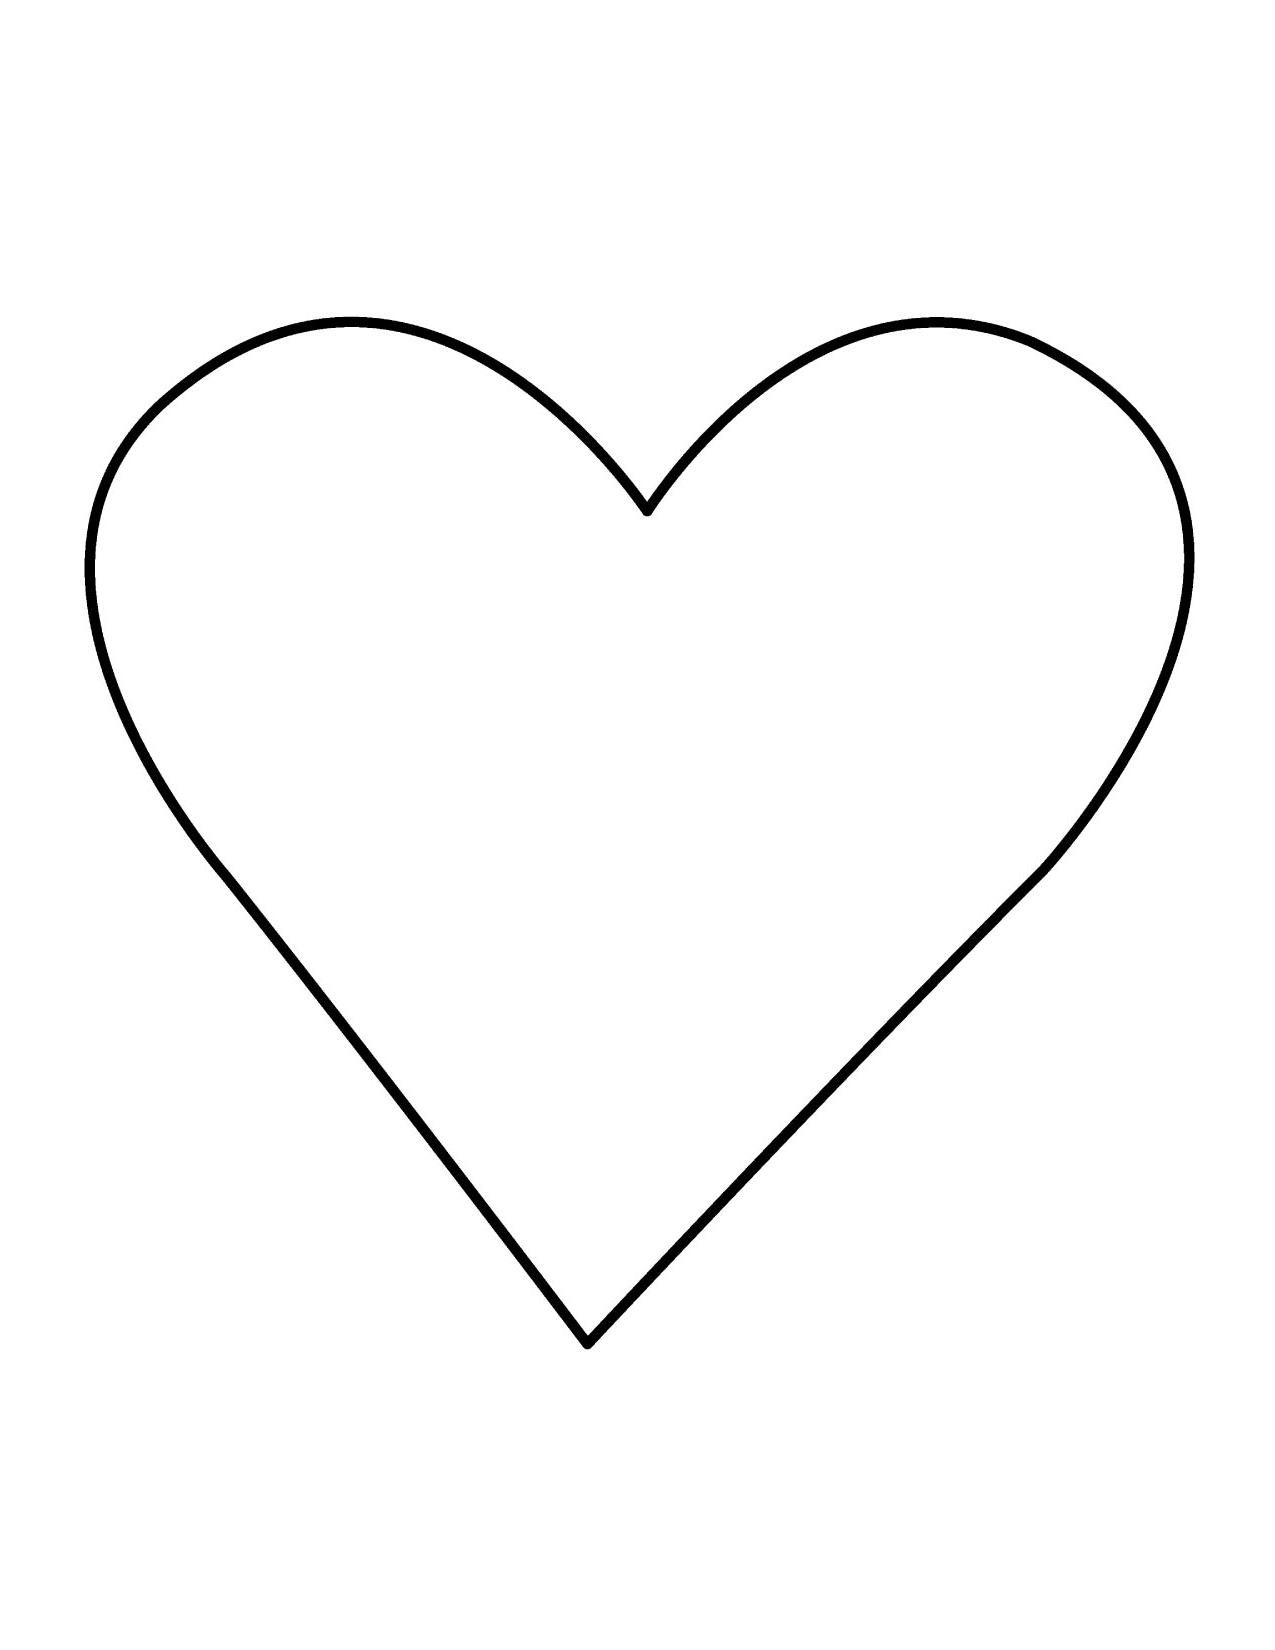 Google clipart hearts image transparent library Best HD Small Heart Clip Art Cdr » Vector Images Design image transparent library